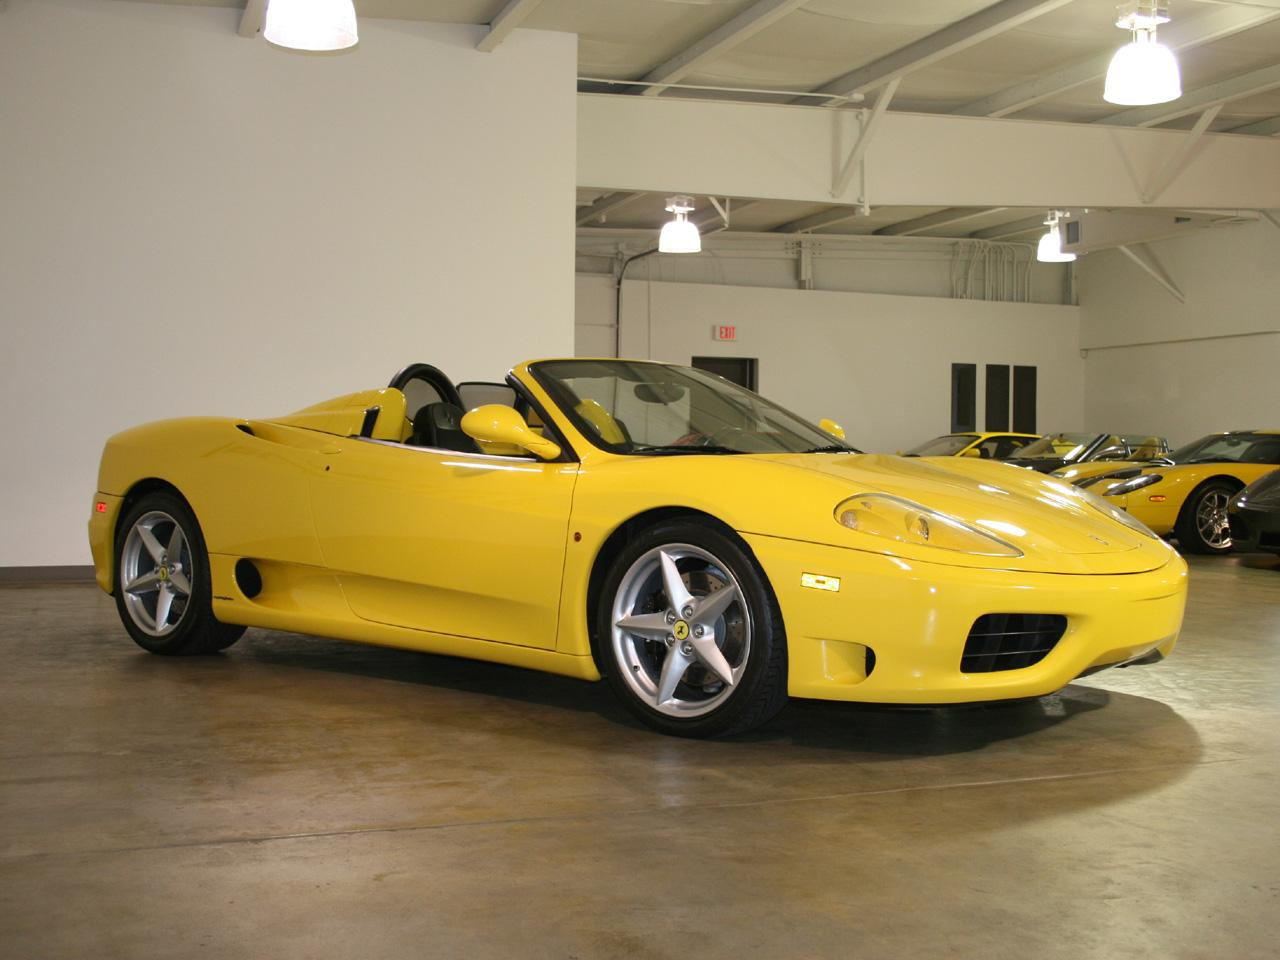 2003 ferrari 360 spider. Black Bedroom Furniture Sets. Home Design Ideas